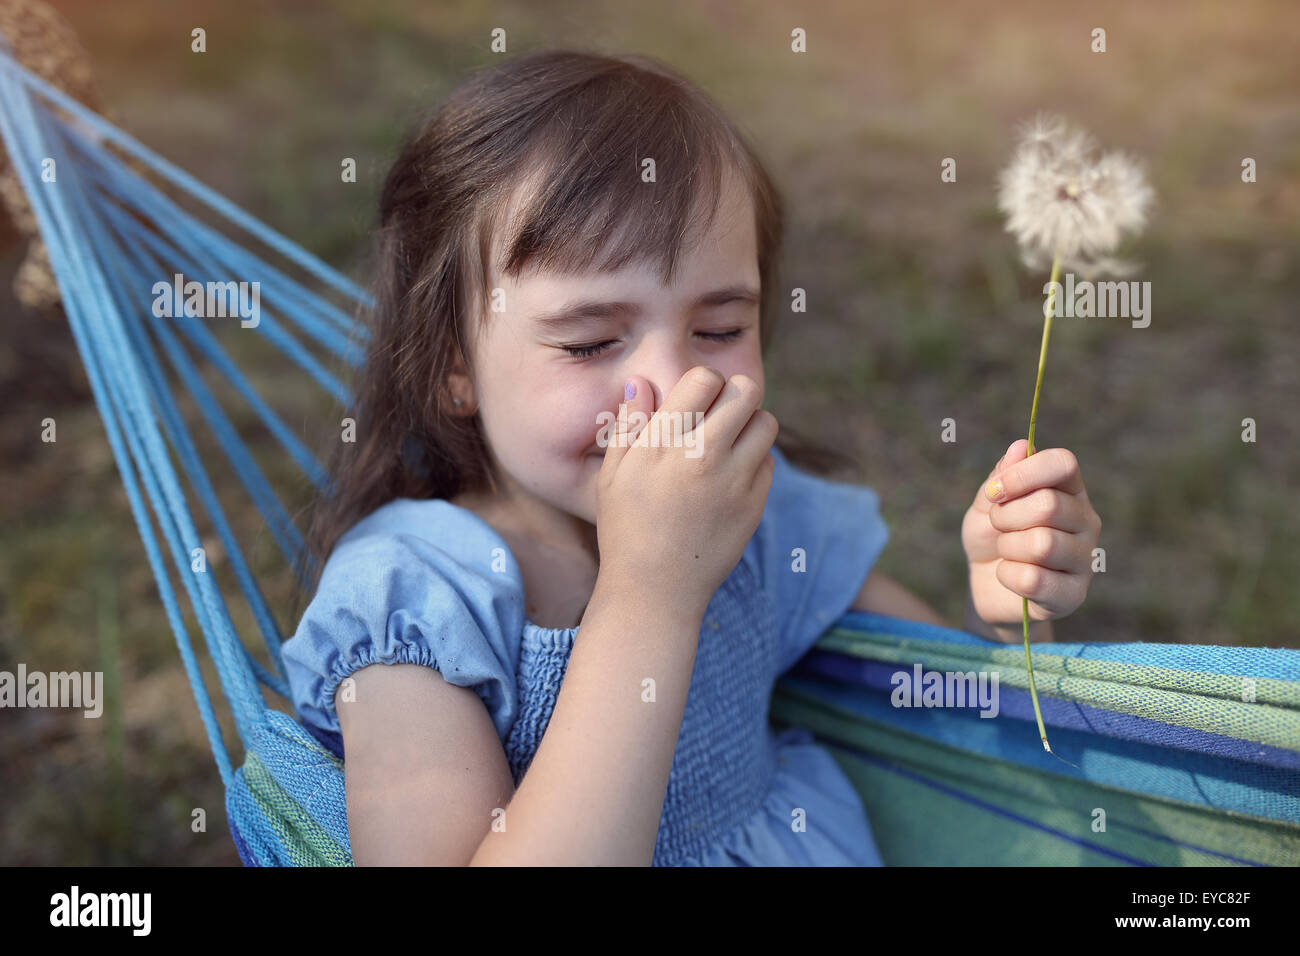 Fever runny nose - little girl with dandelions - Stock Image